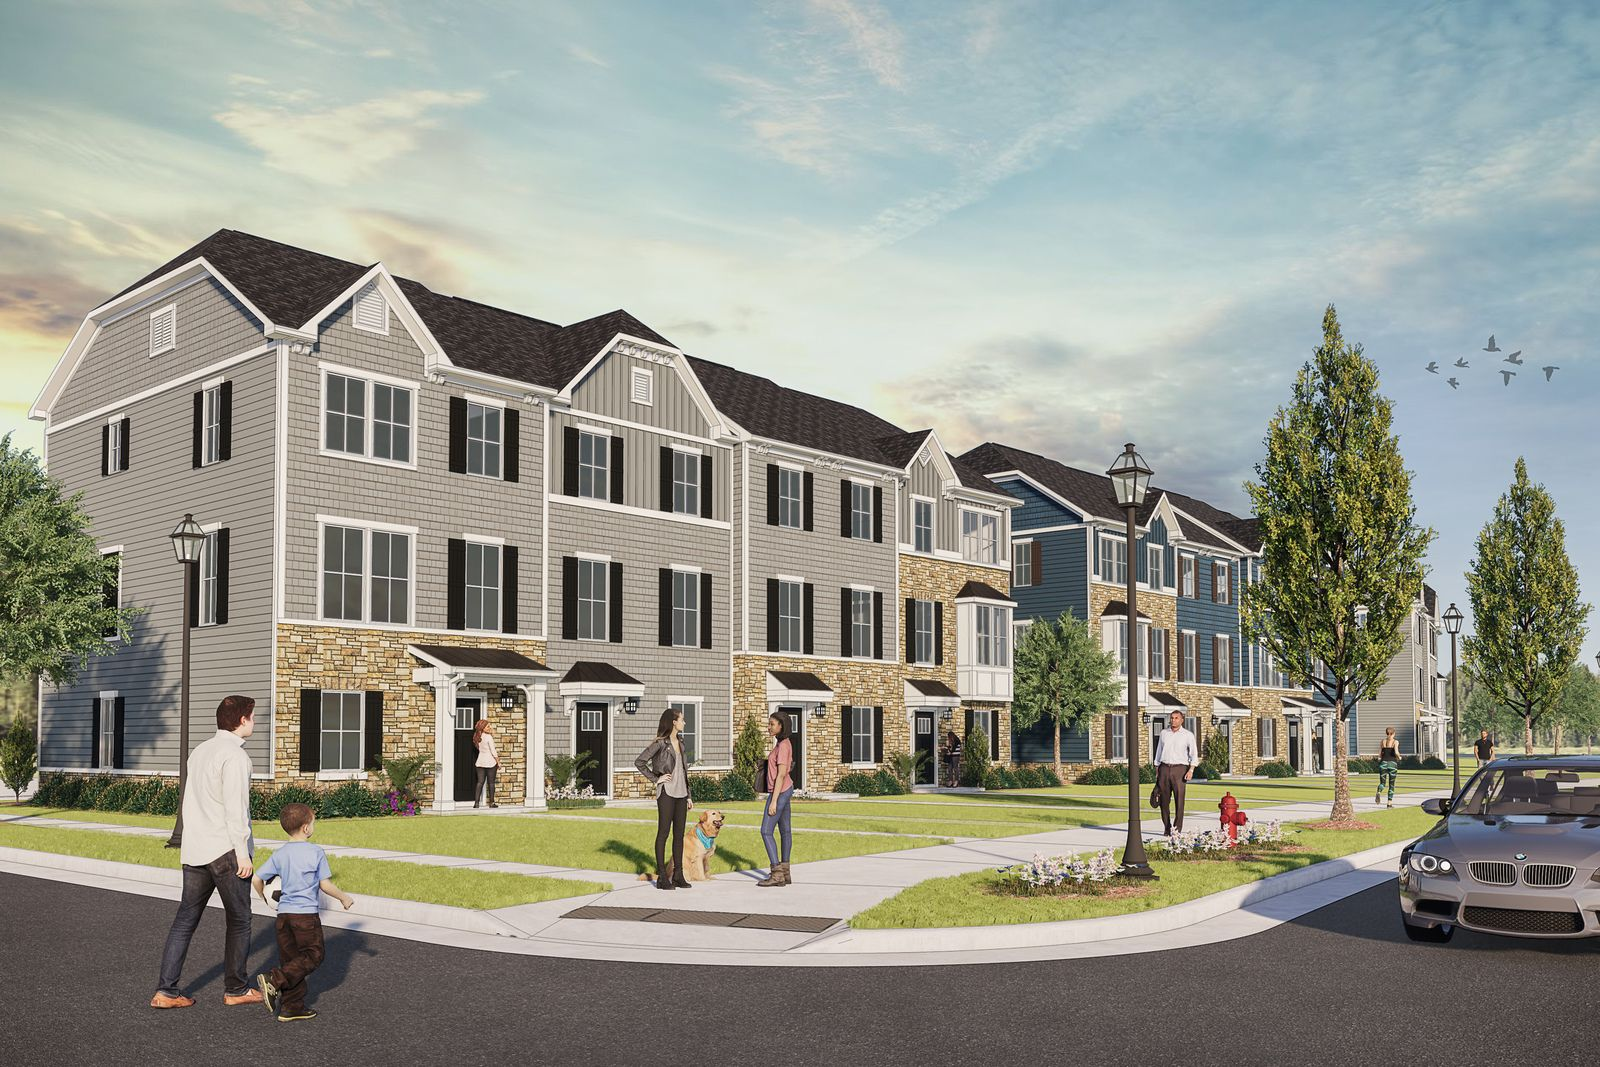 Welcome to Laurel Grove:Pine Township's newest community with future pool, clubhouse, & walking trails. Luxury open concept townhomes, from upper $200s.Click here toschedule your visit!